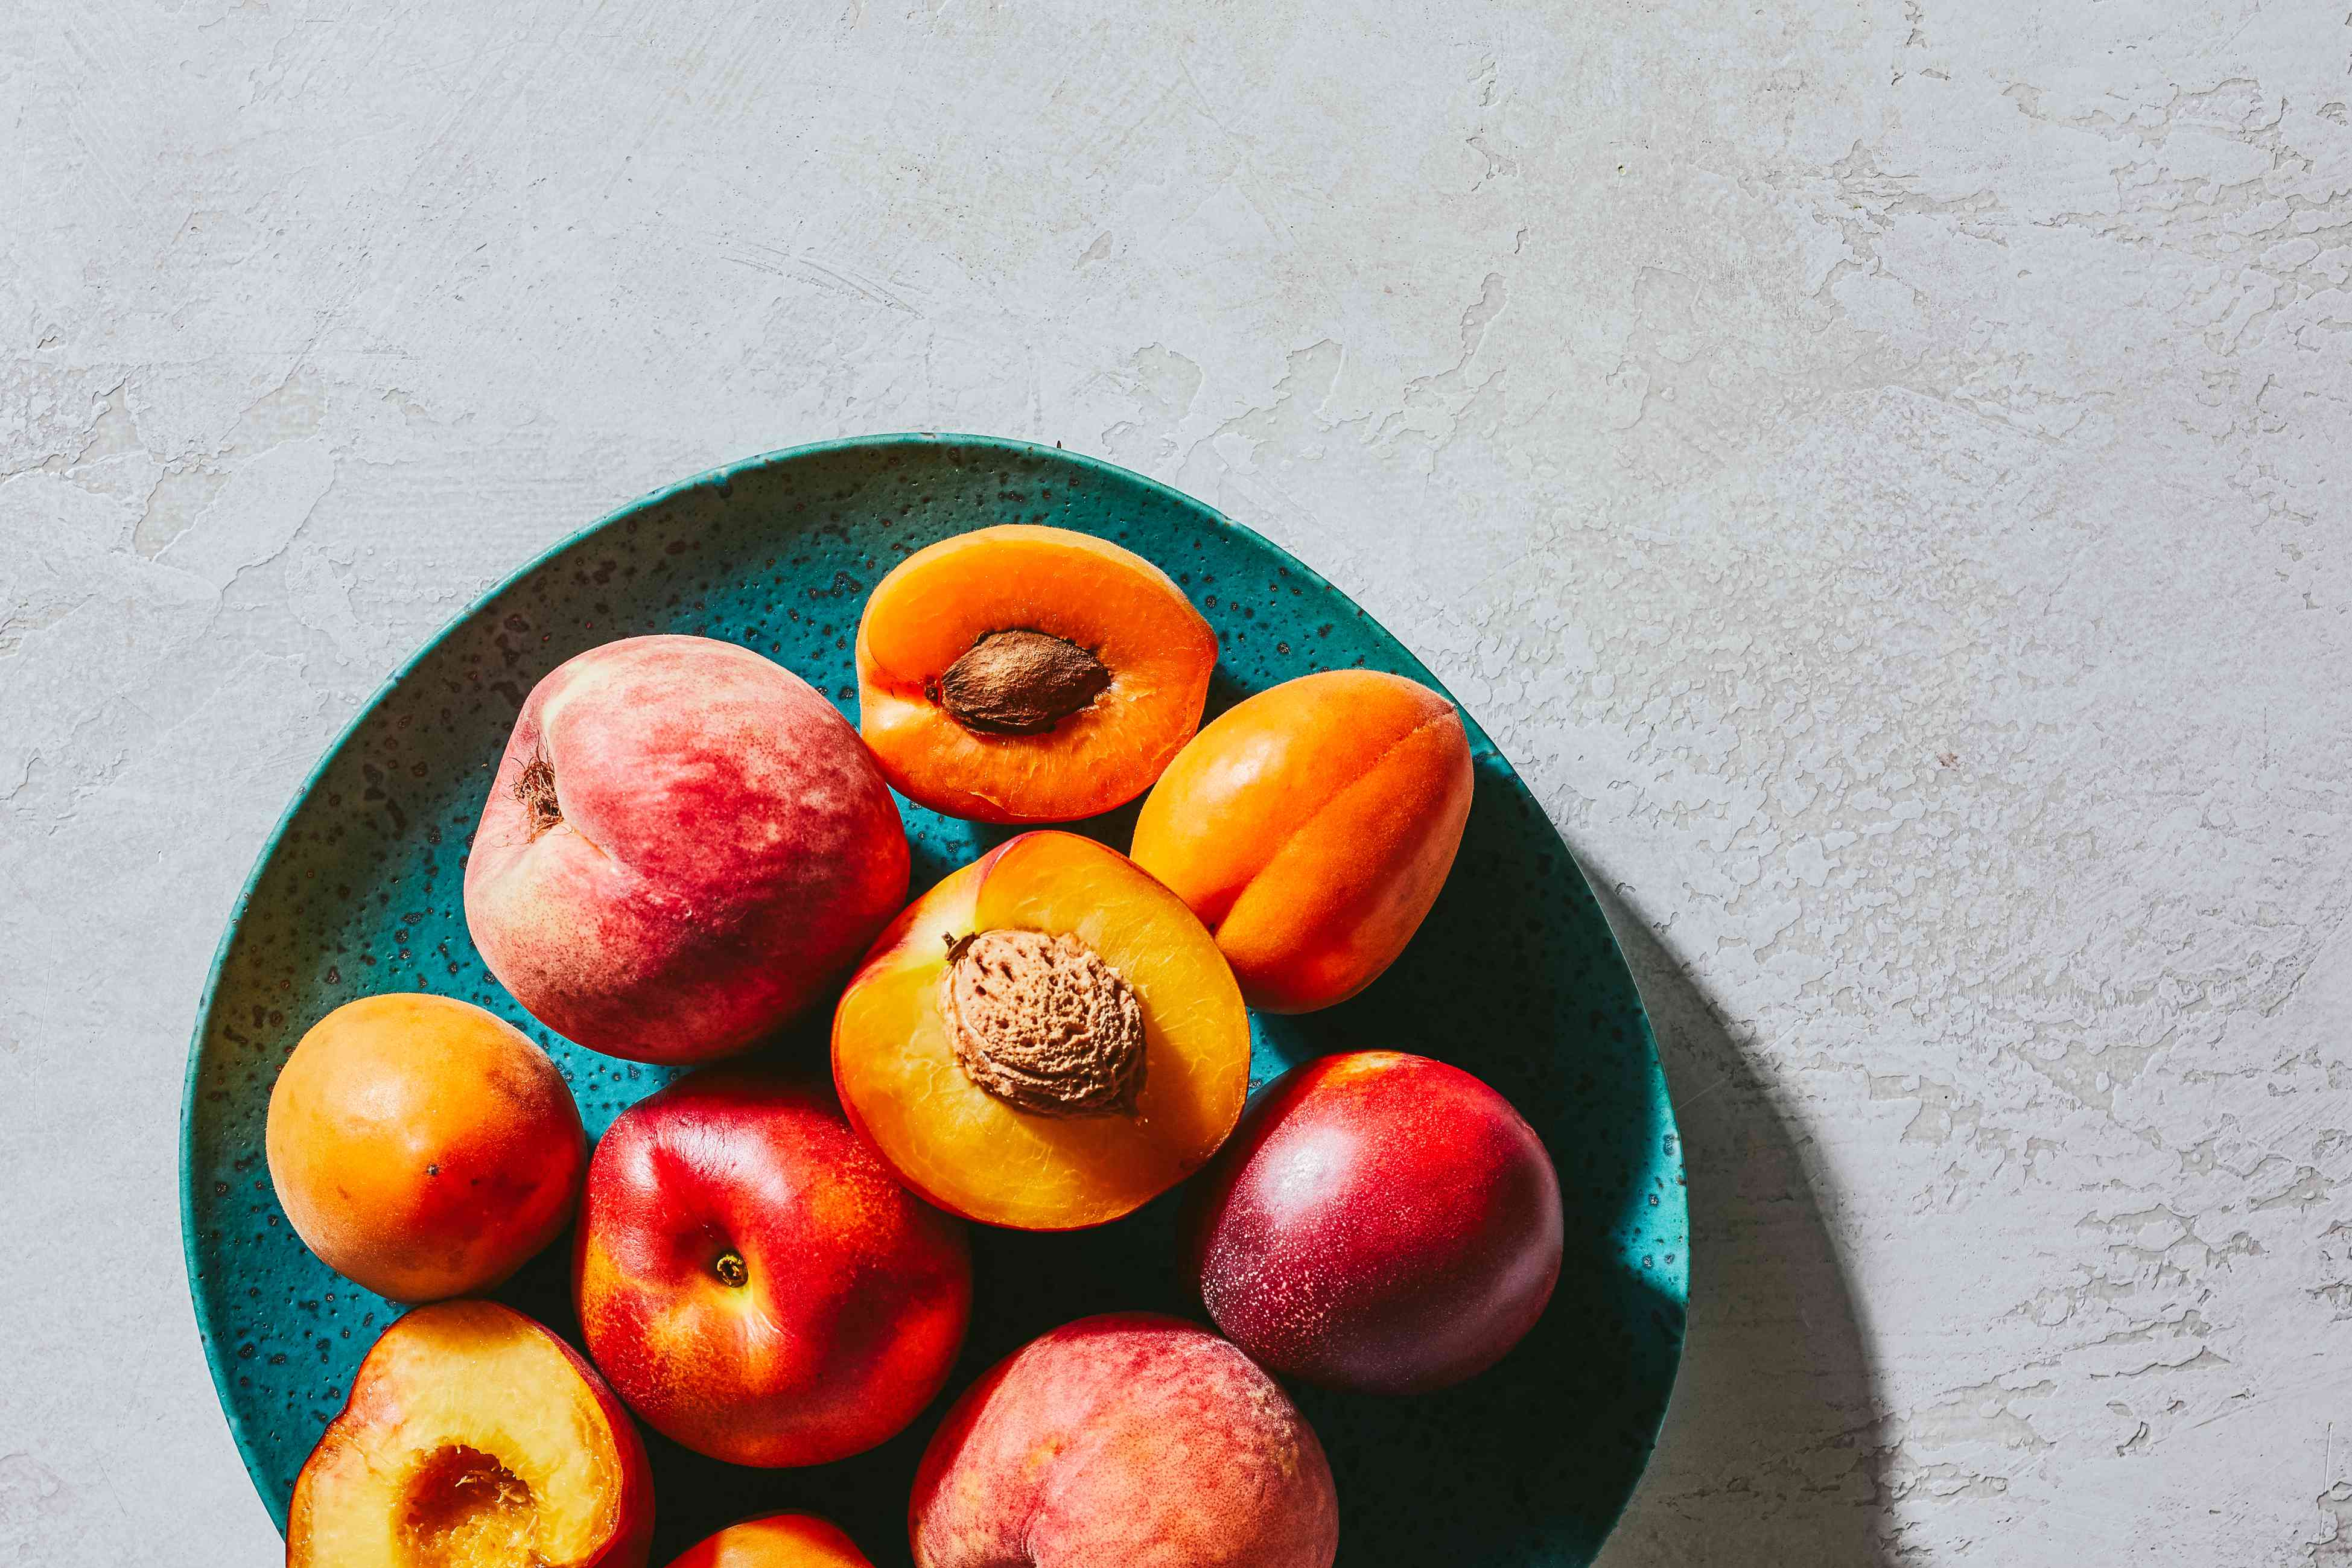 nectarines, peaches, and apricots crowded together onto speckled turquoise plate